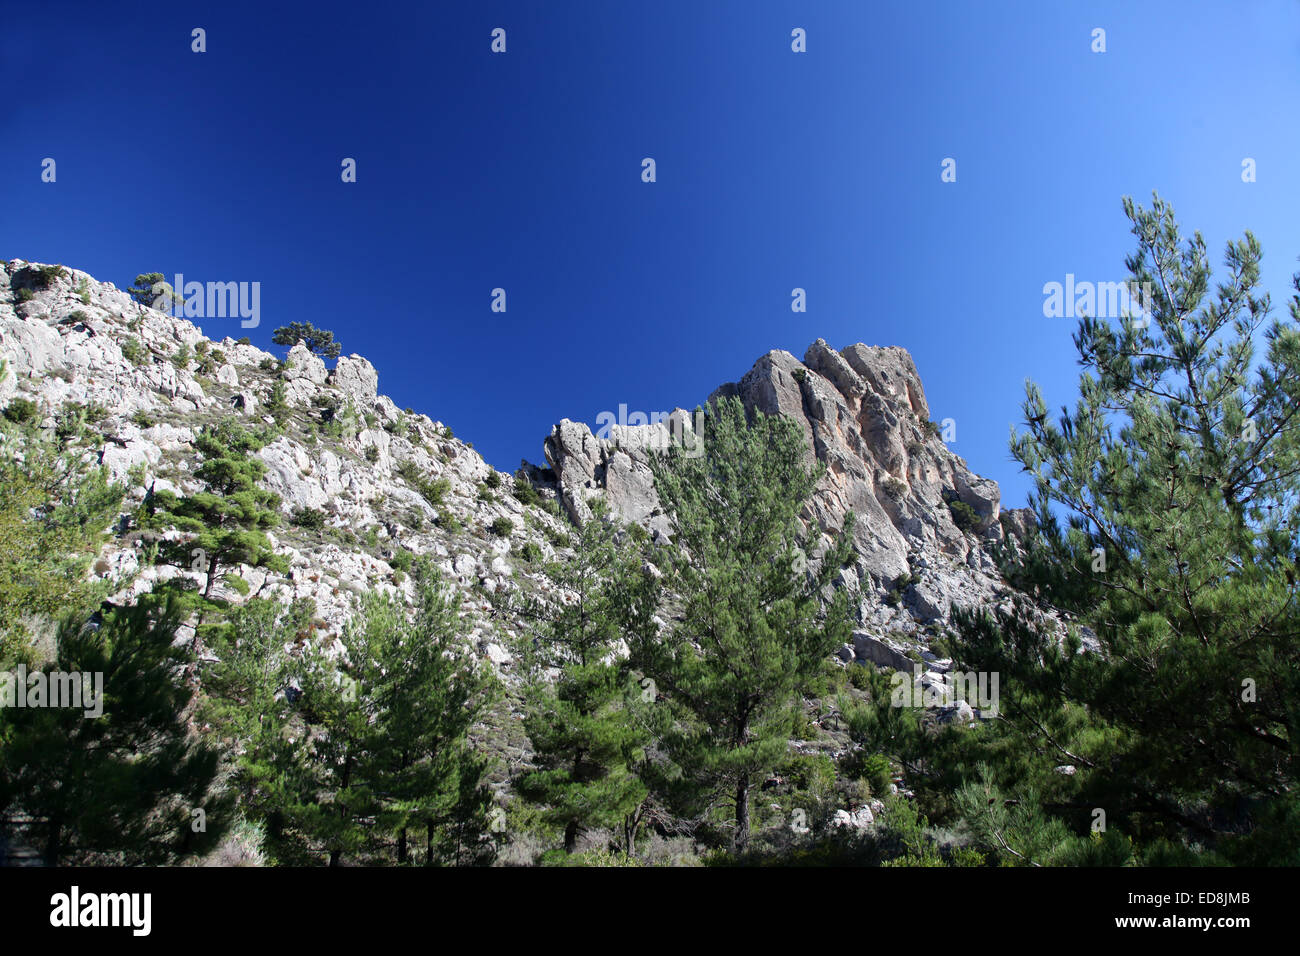 Craggy mountaintops and pine trees characterise the Cretan landscape - Stock Image